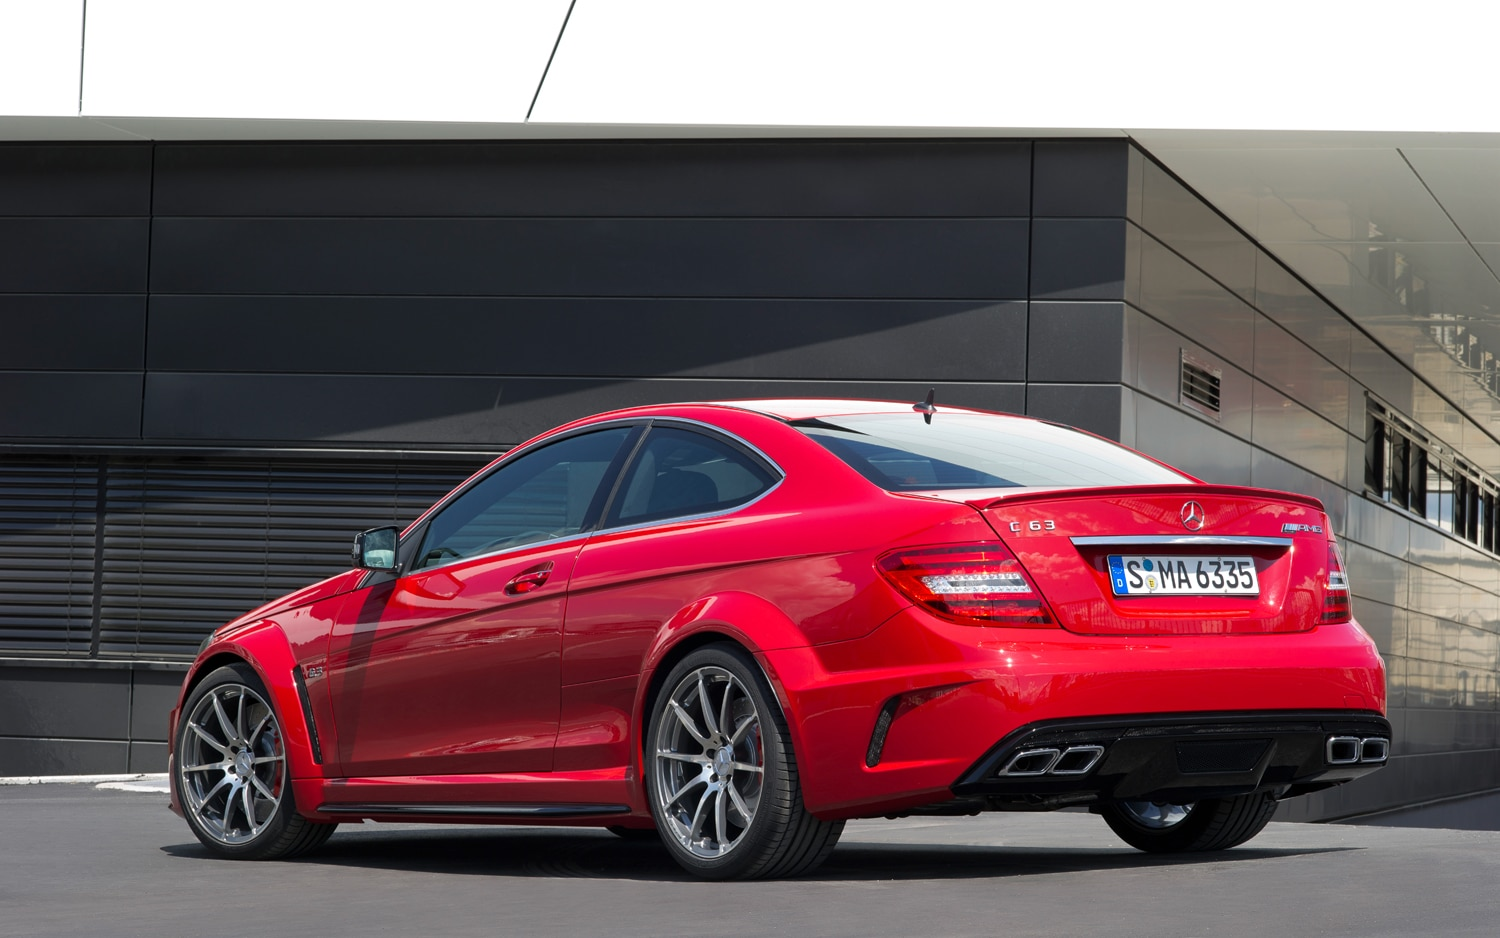 2012 Mercedes Benz C63 AMG Black Series Rear Three Quarters